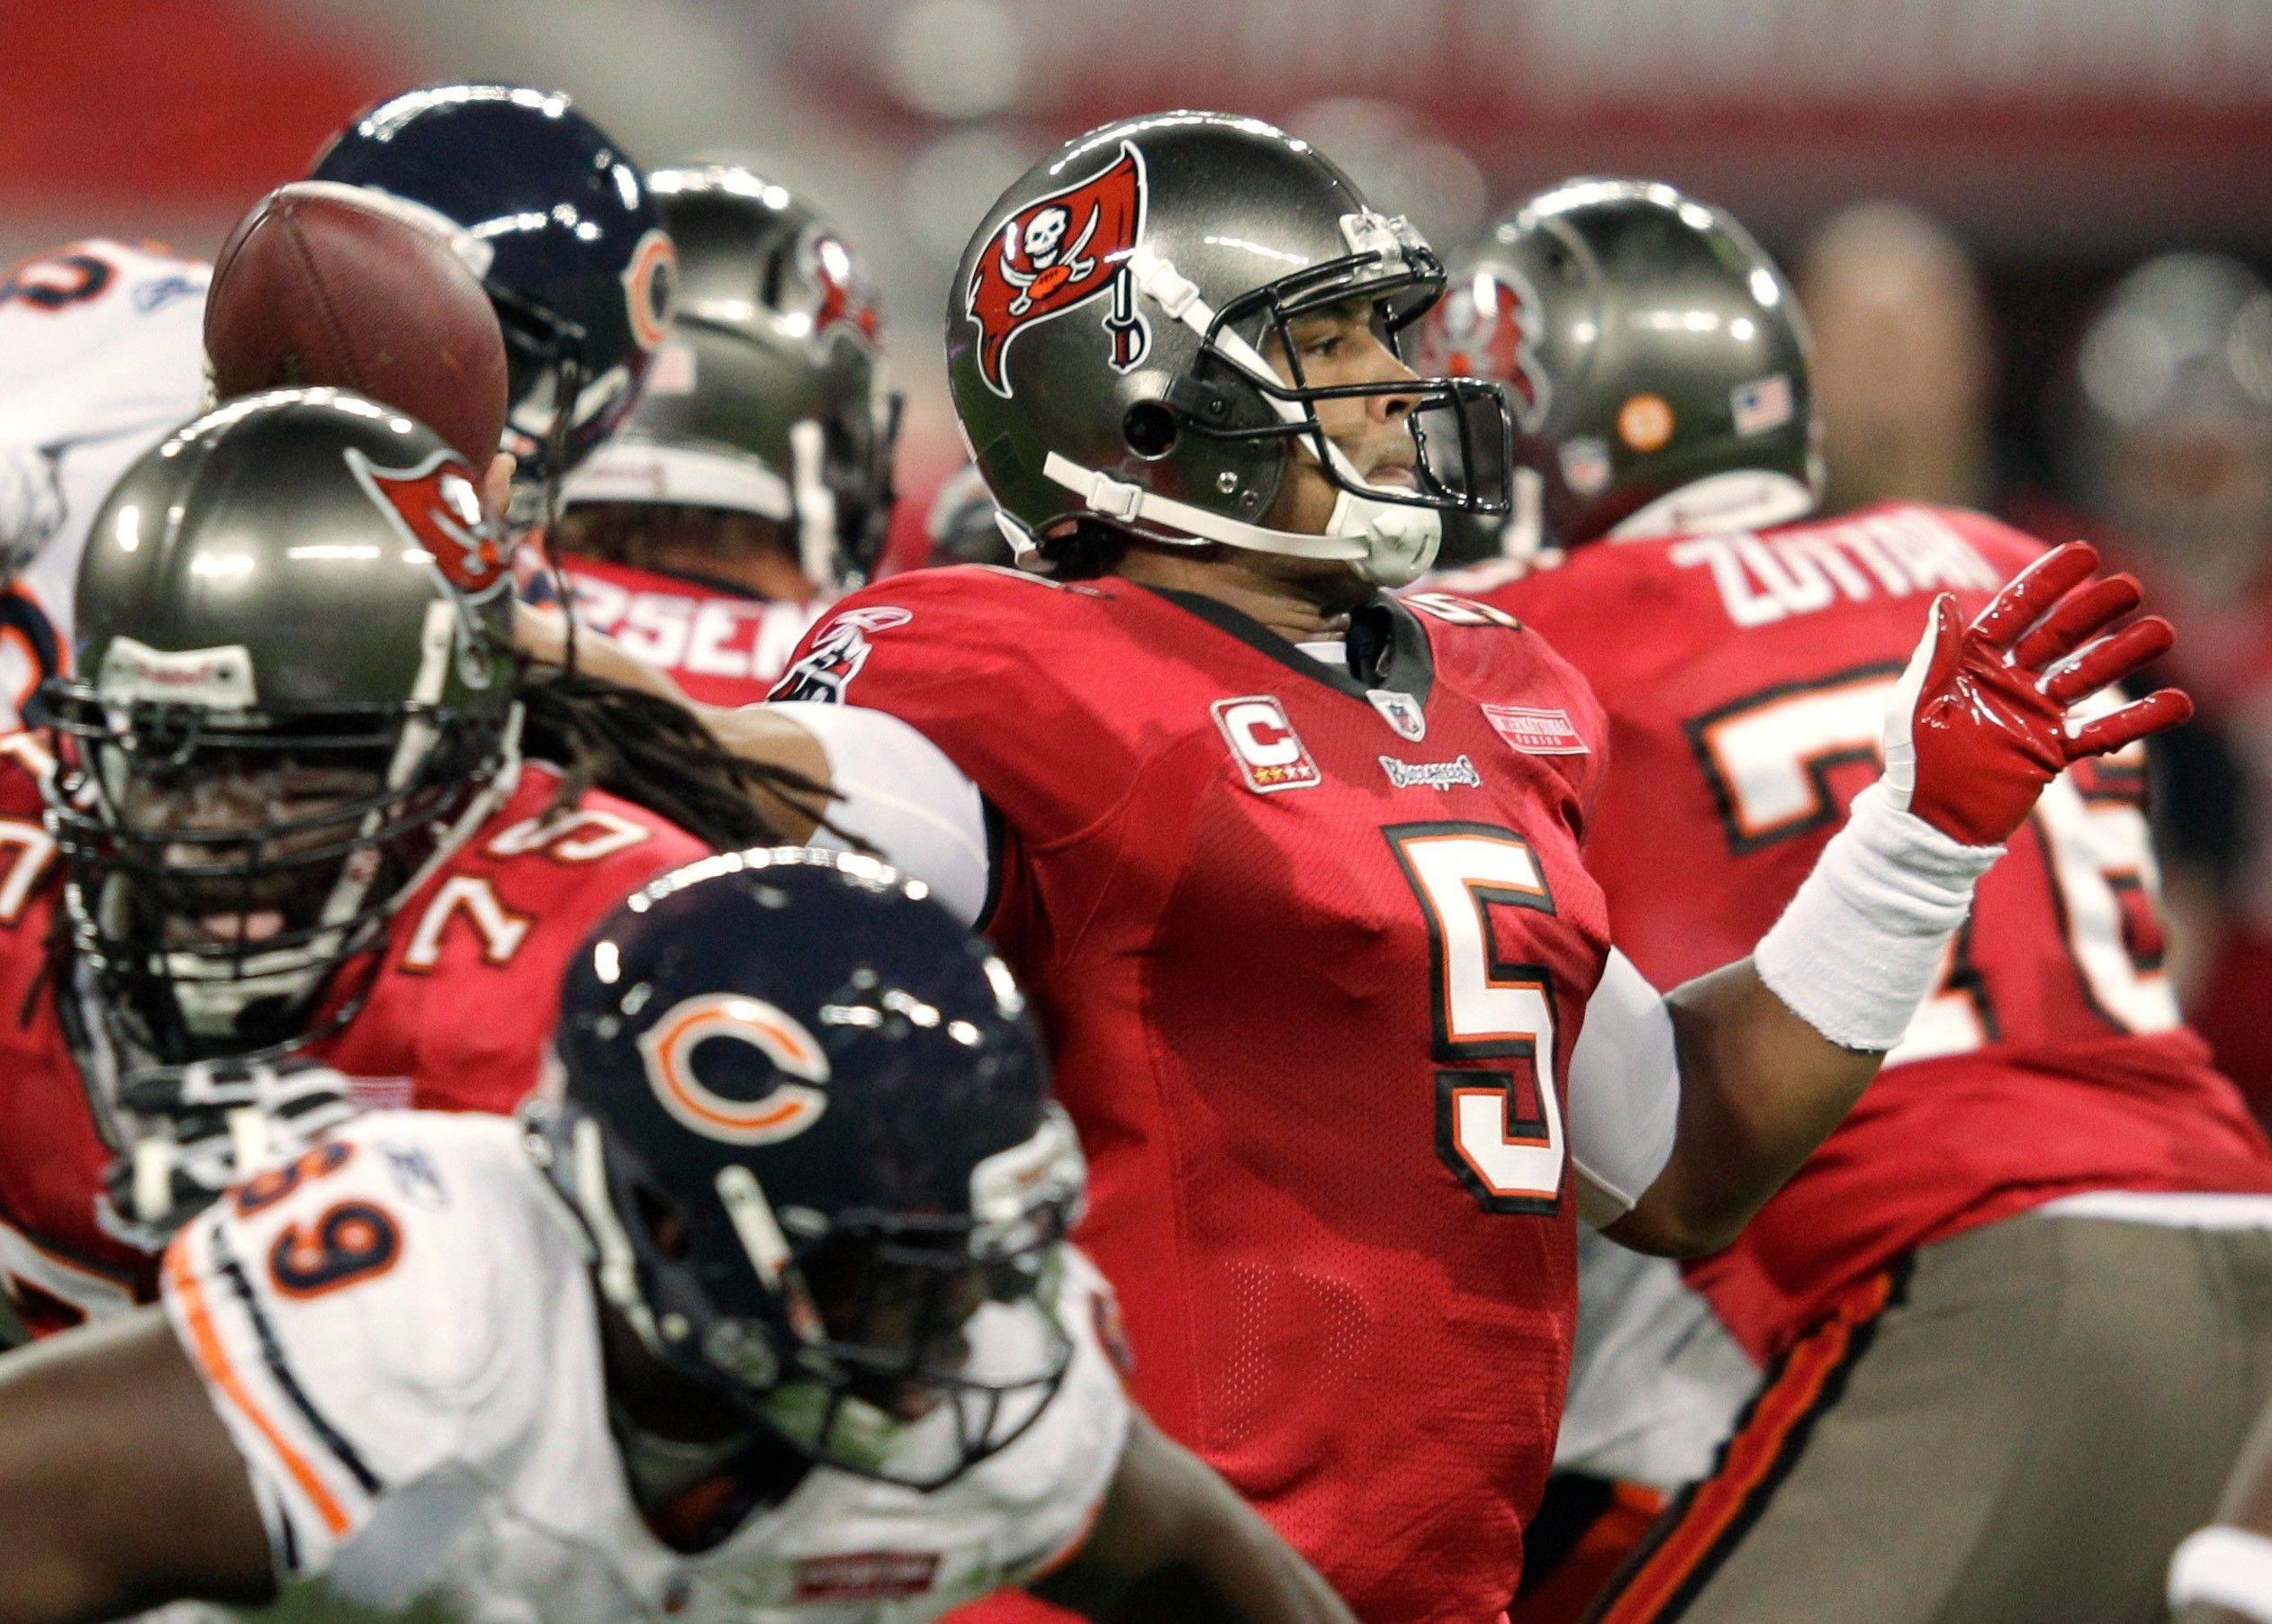 Tampa Bay Buccaneers quarterback Josh Freeman throws a pass during the first half.